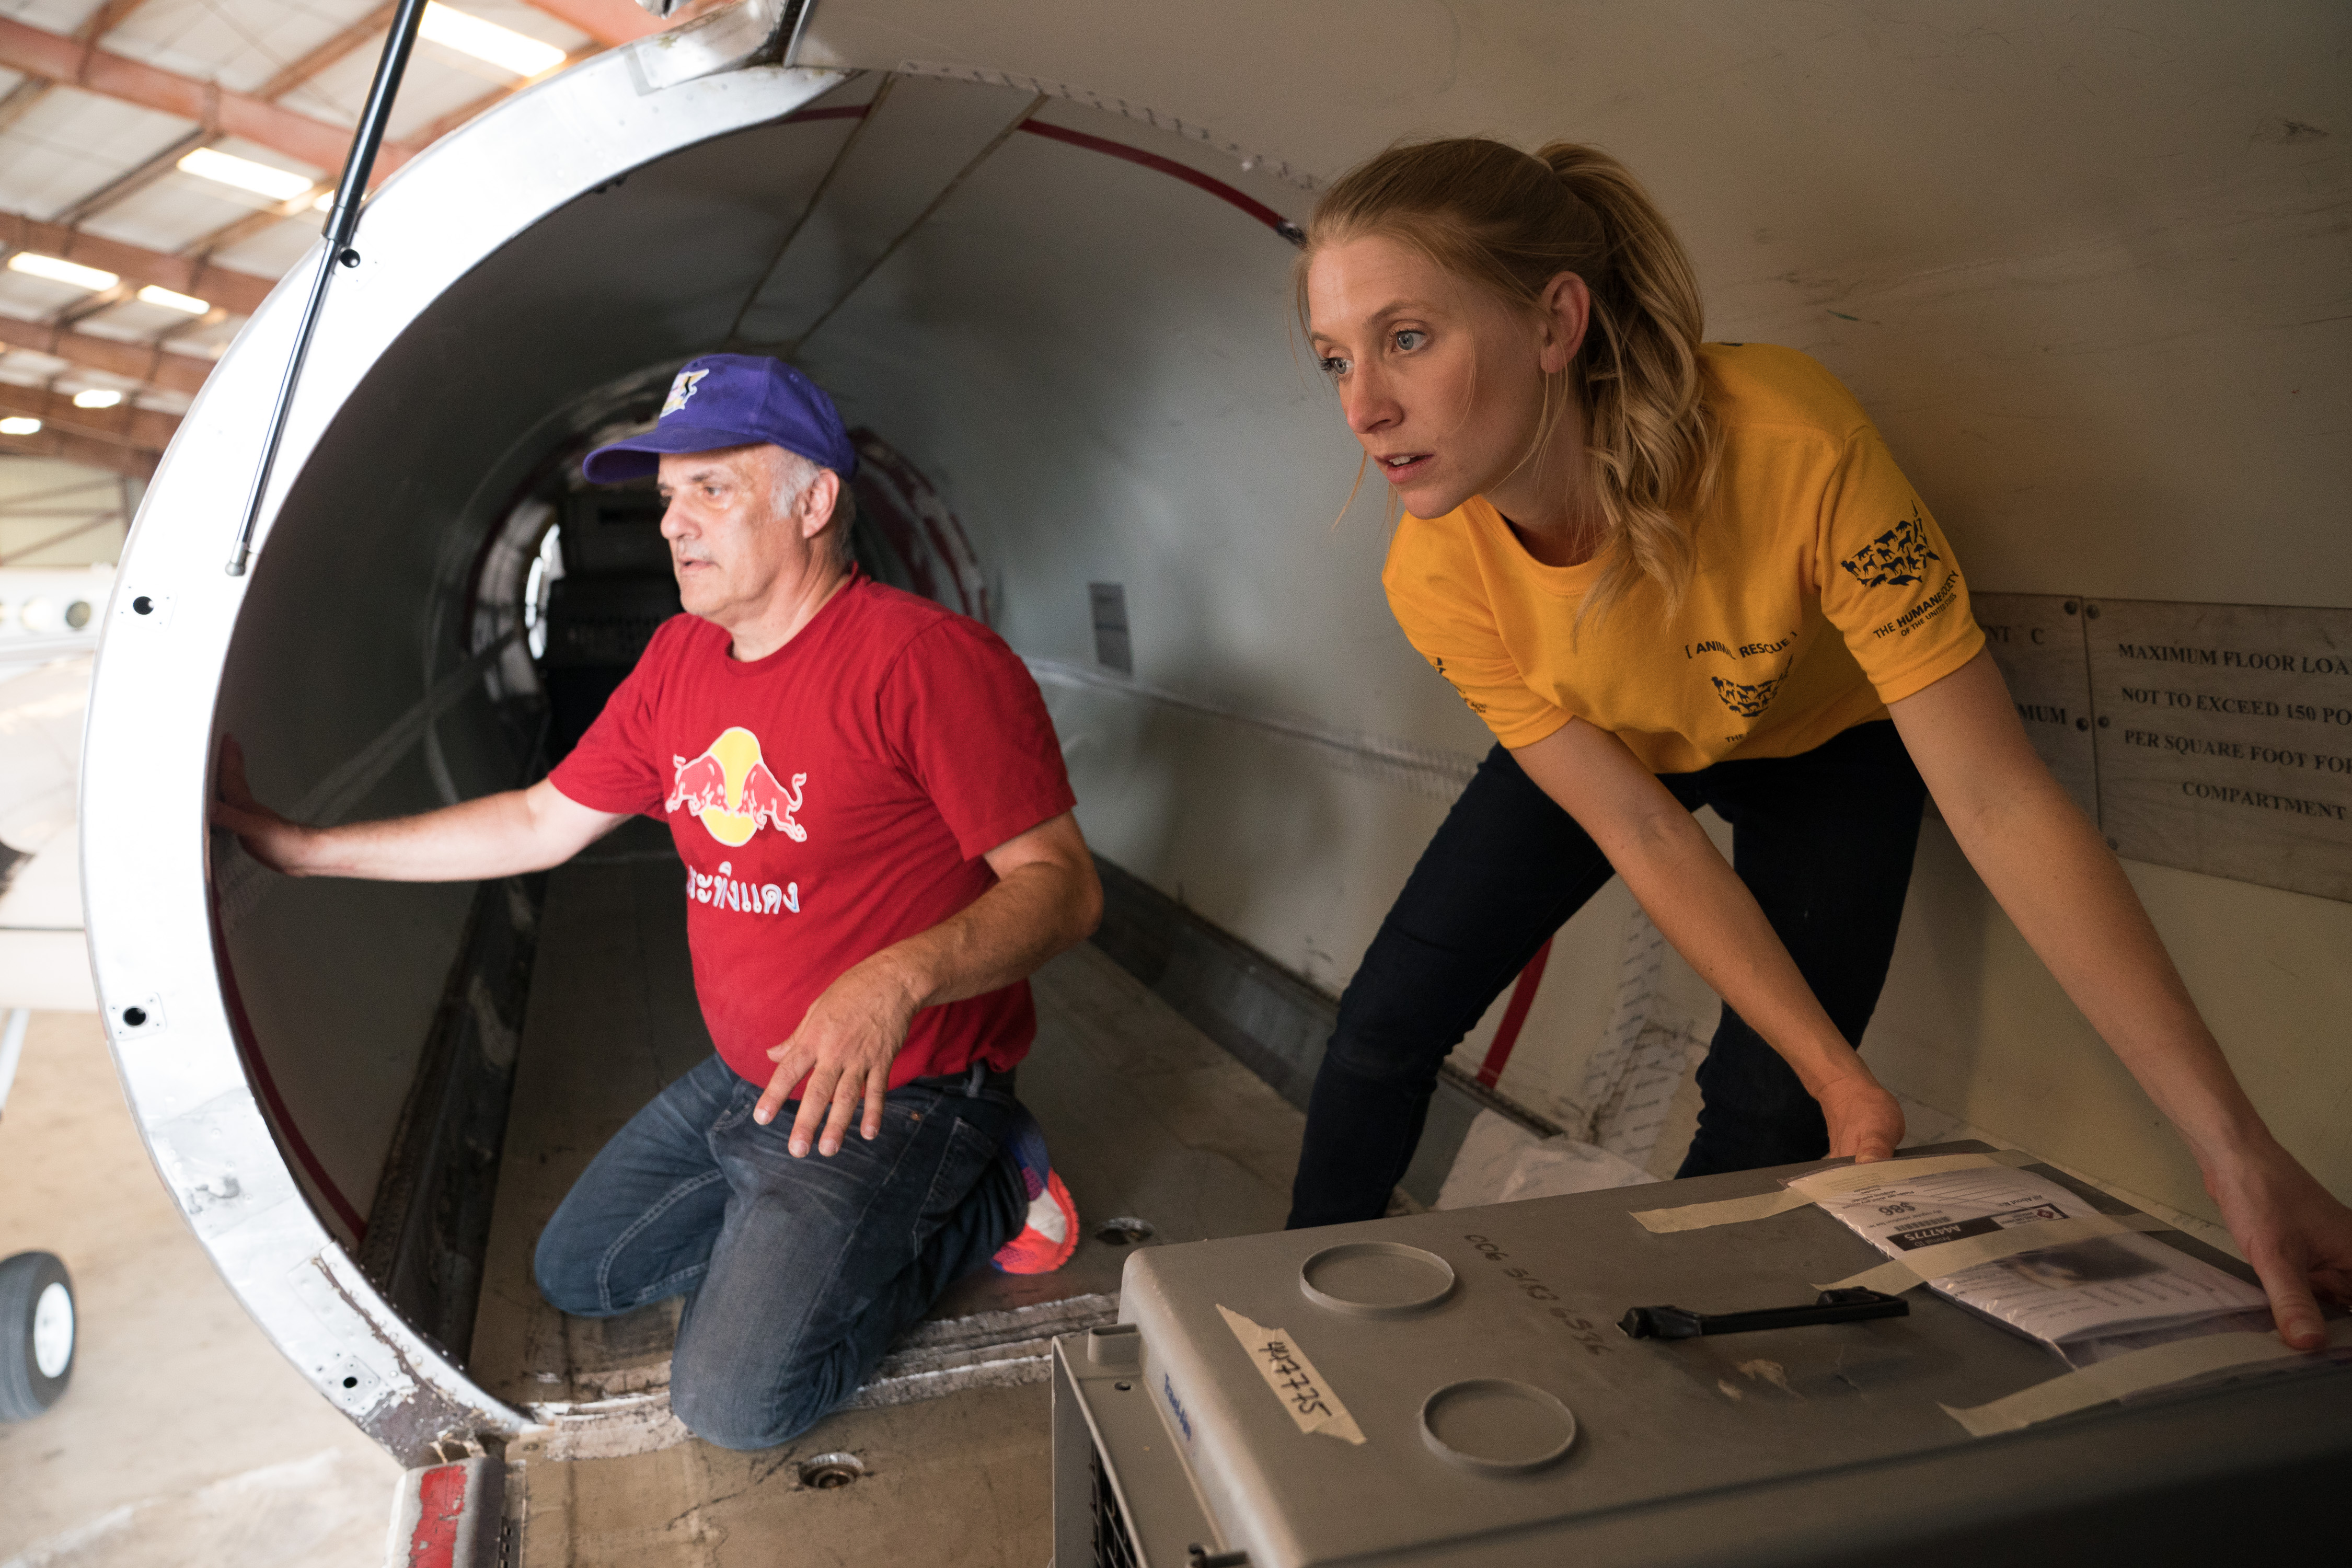 Humane Society of the United States District Leader Nikki Prather, right, and Wings Of Rescue logistics coordinator Ric Browde load dogs onto a plane during The HSUS San Antonio Transport, Tuesday, Aug. 29, 2017, in San Antonio. Approximately one hundred dogs are being transported by Wings of Rescue to the east coast for adoption. (Darren Abate/AP Images for The Humane Society of the United States)